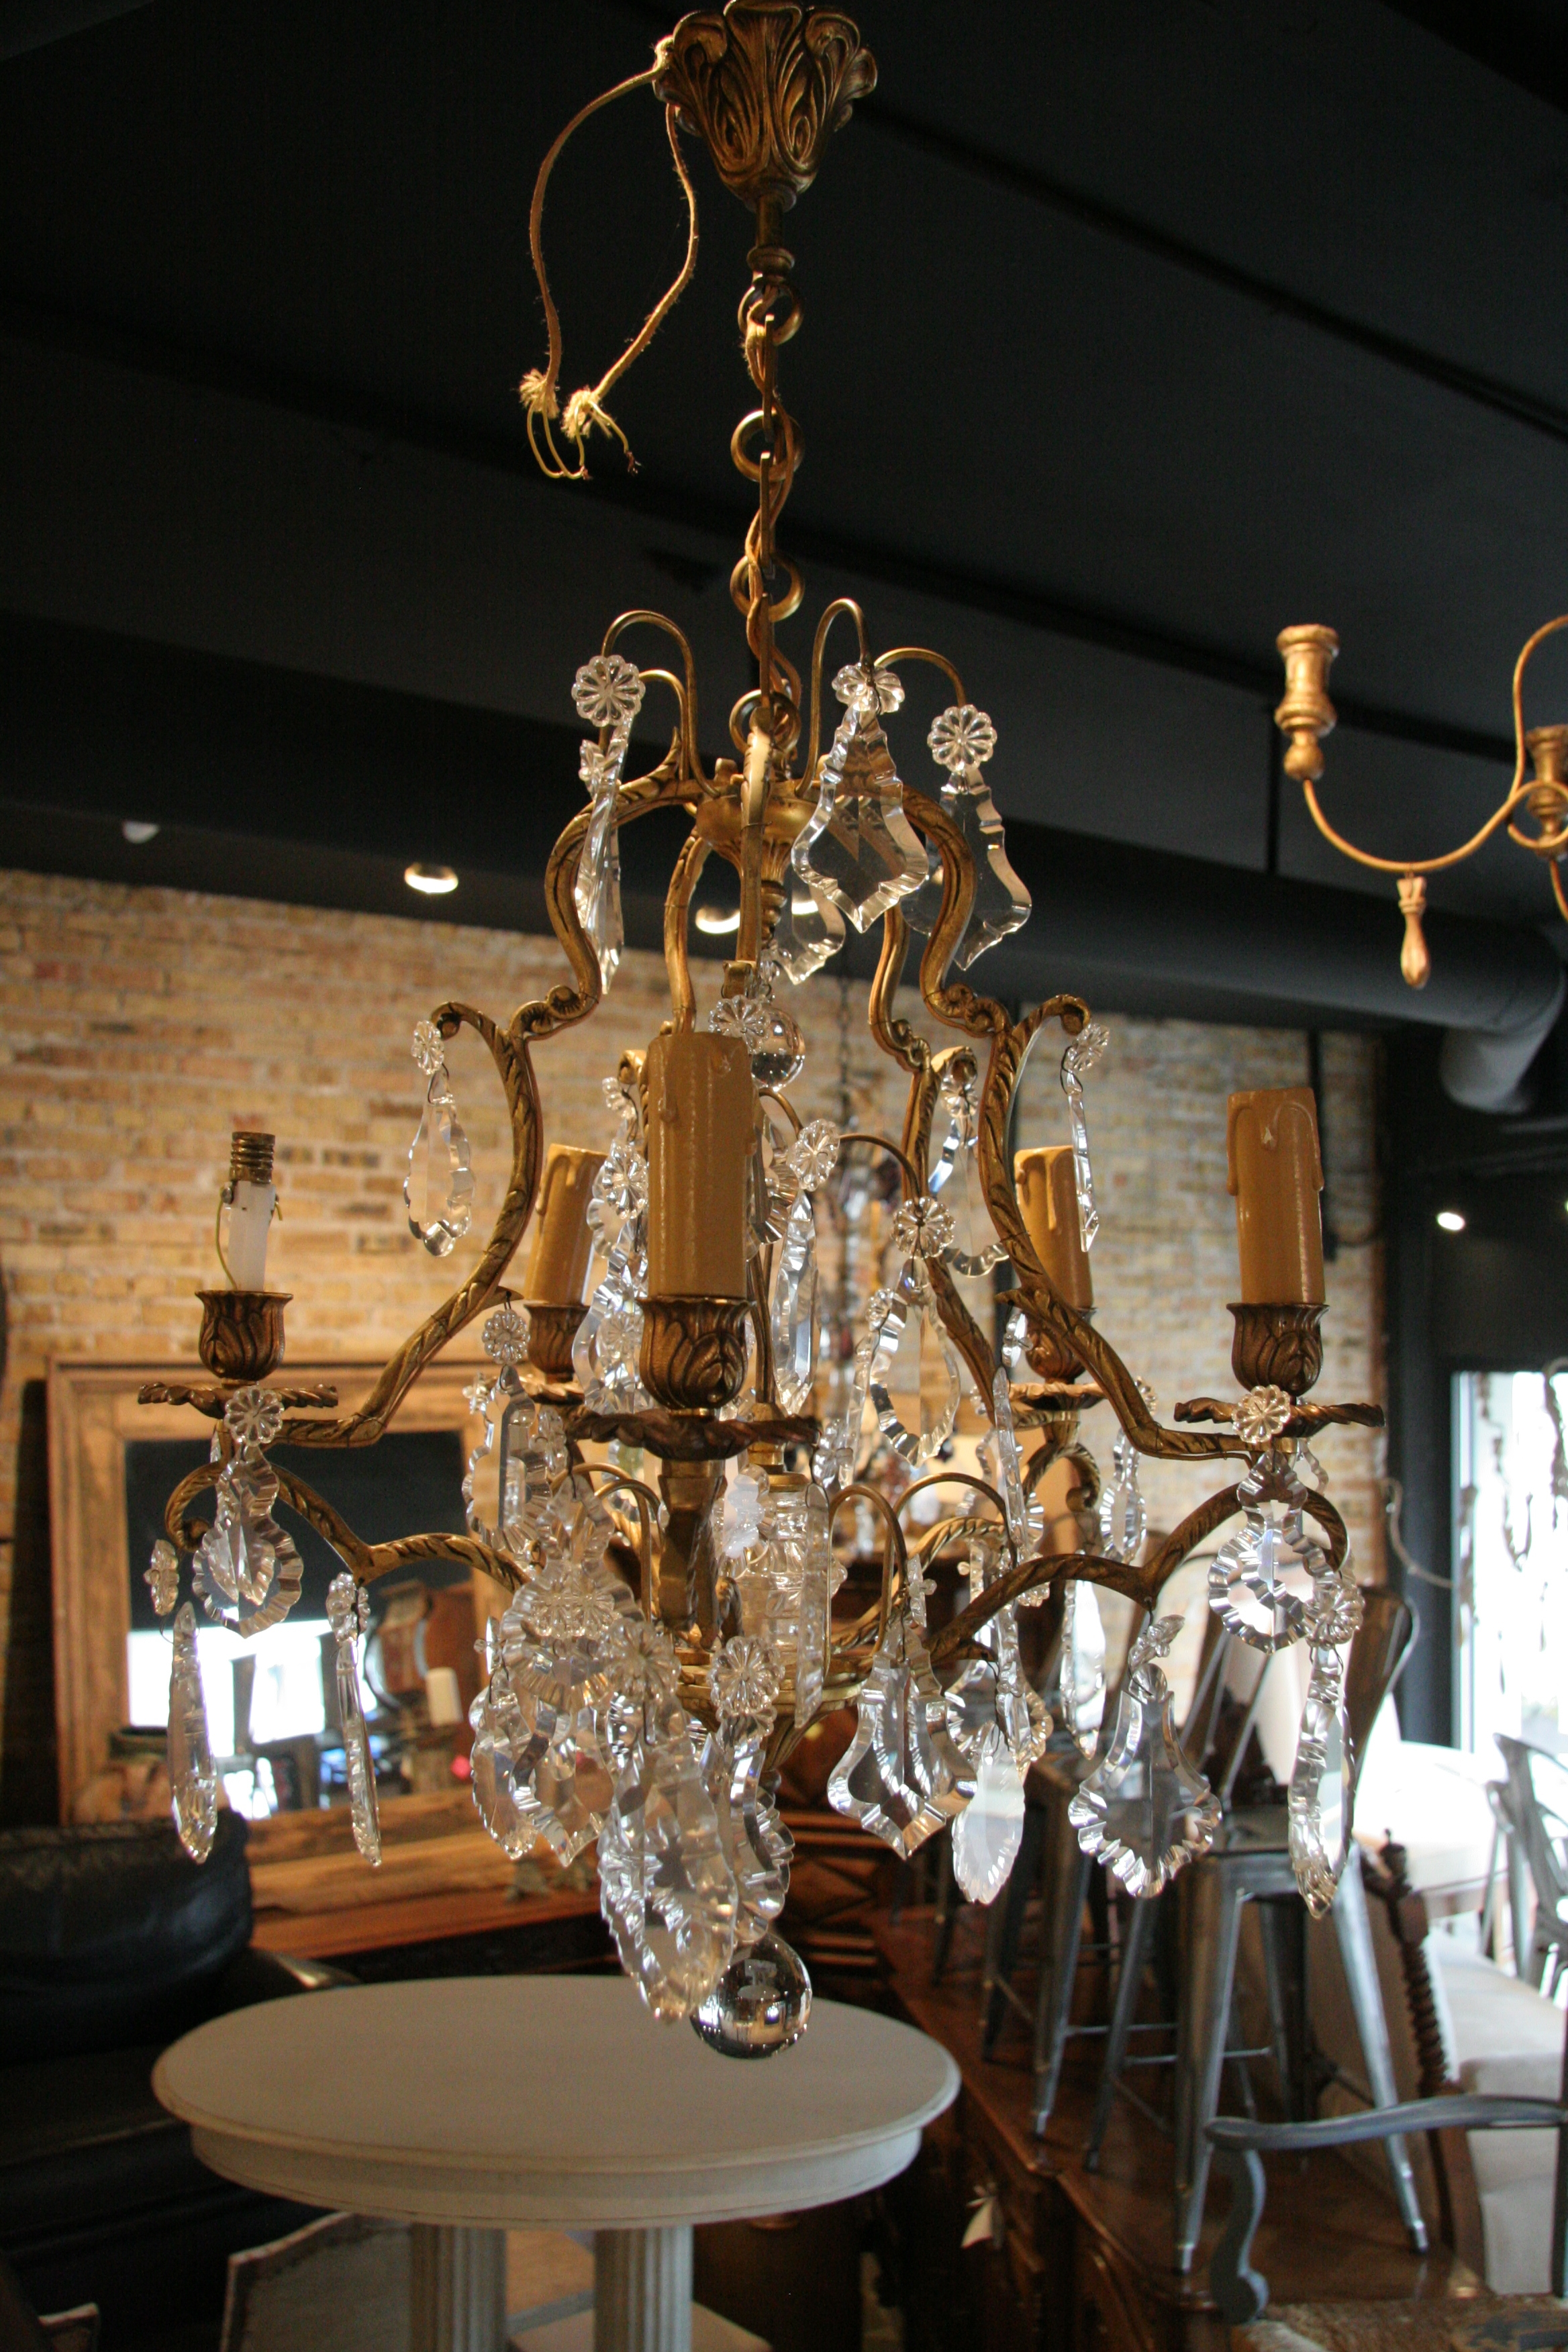 Antique French 5 Light Brass And Crystal Chandelier With Regard To Vintage Chandeliers (Image 4 of 15)